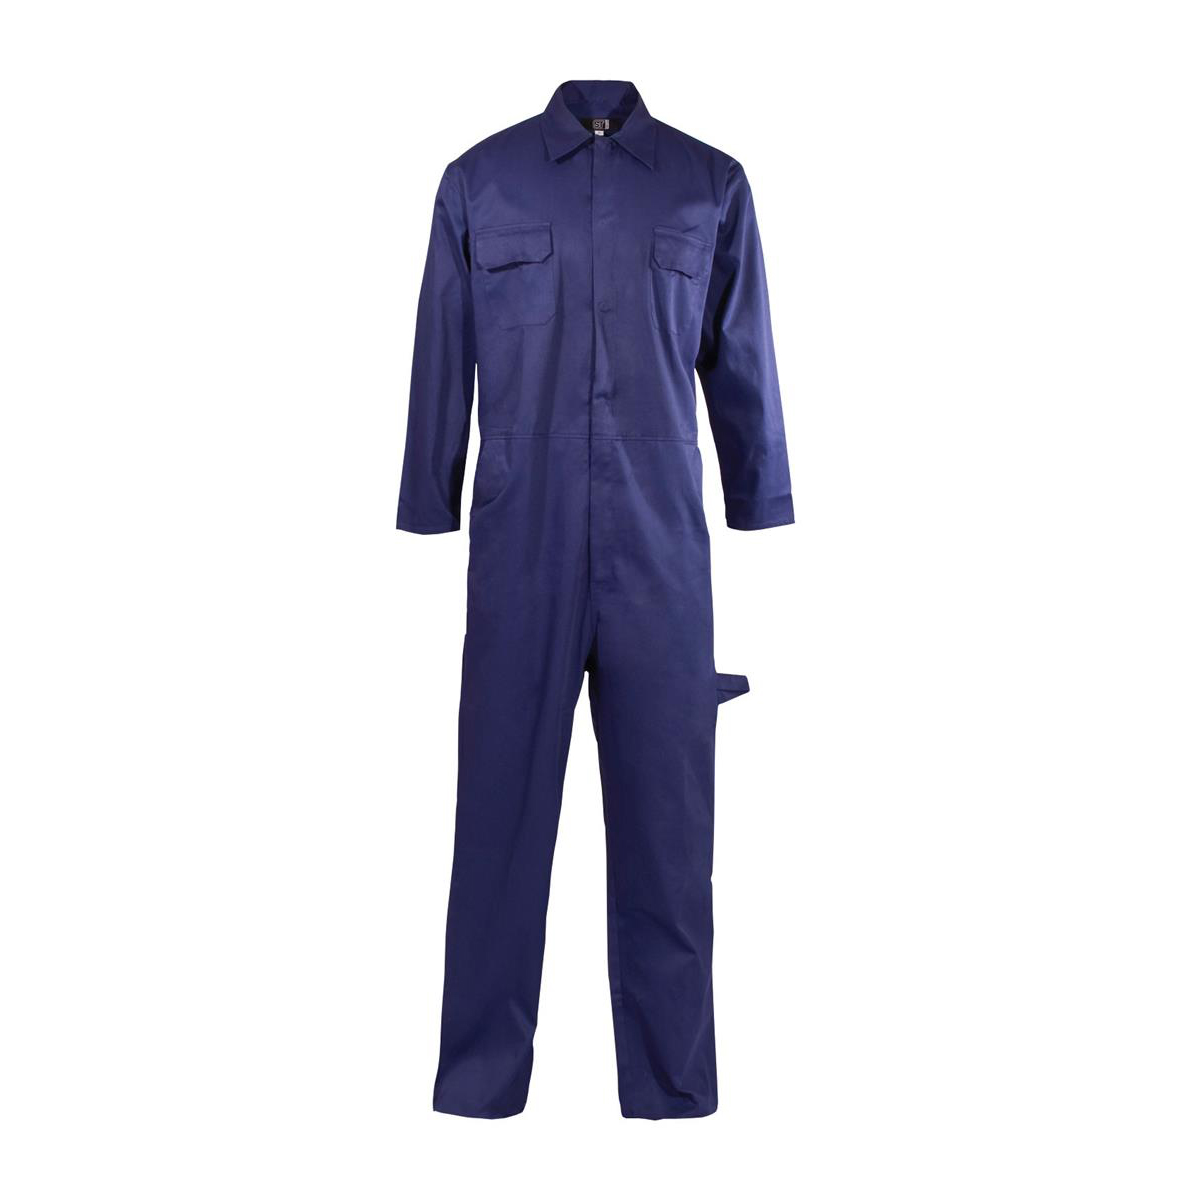 Coverall Basic with Popper Front Opening Polycotton XXLarge Navy *Approx 3 Day Leadtime*